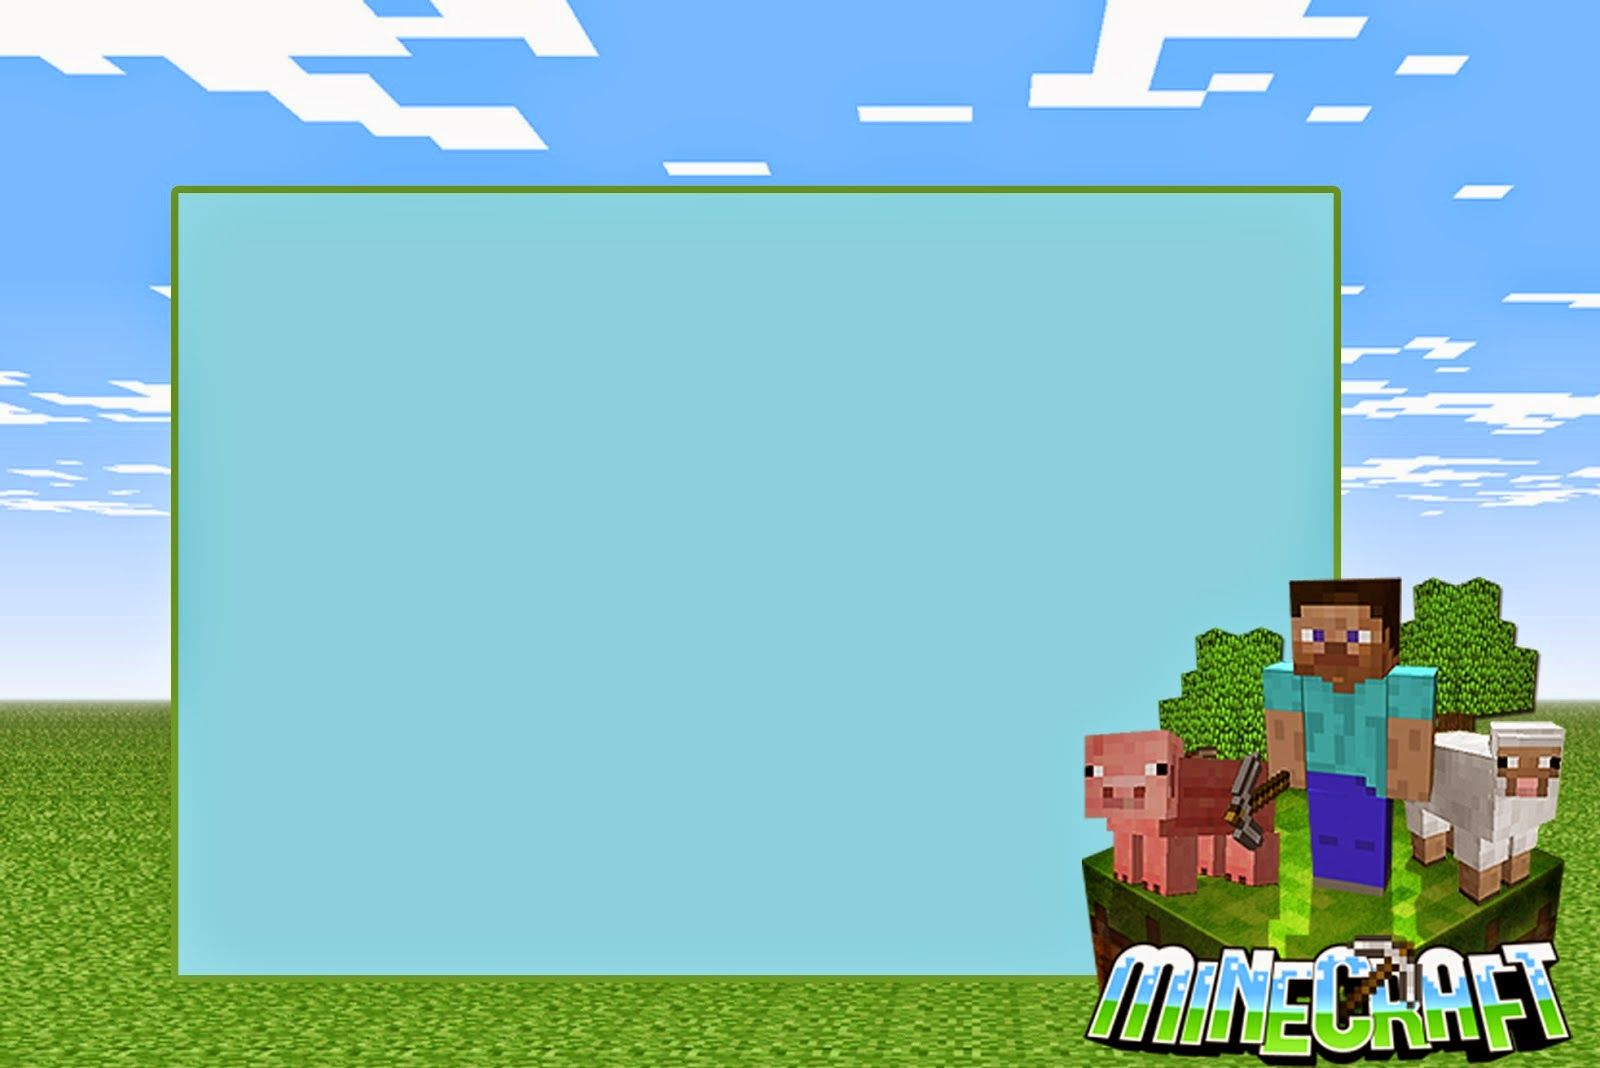 Minecraft: Free Printable Invitations. | mind craft invits ...